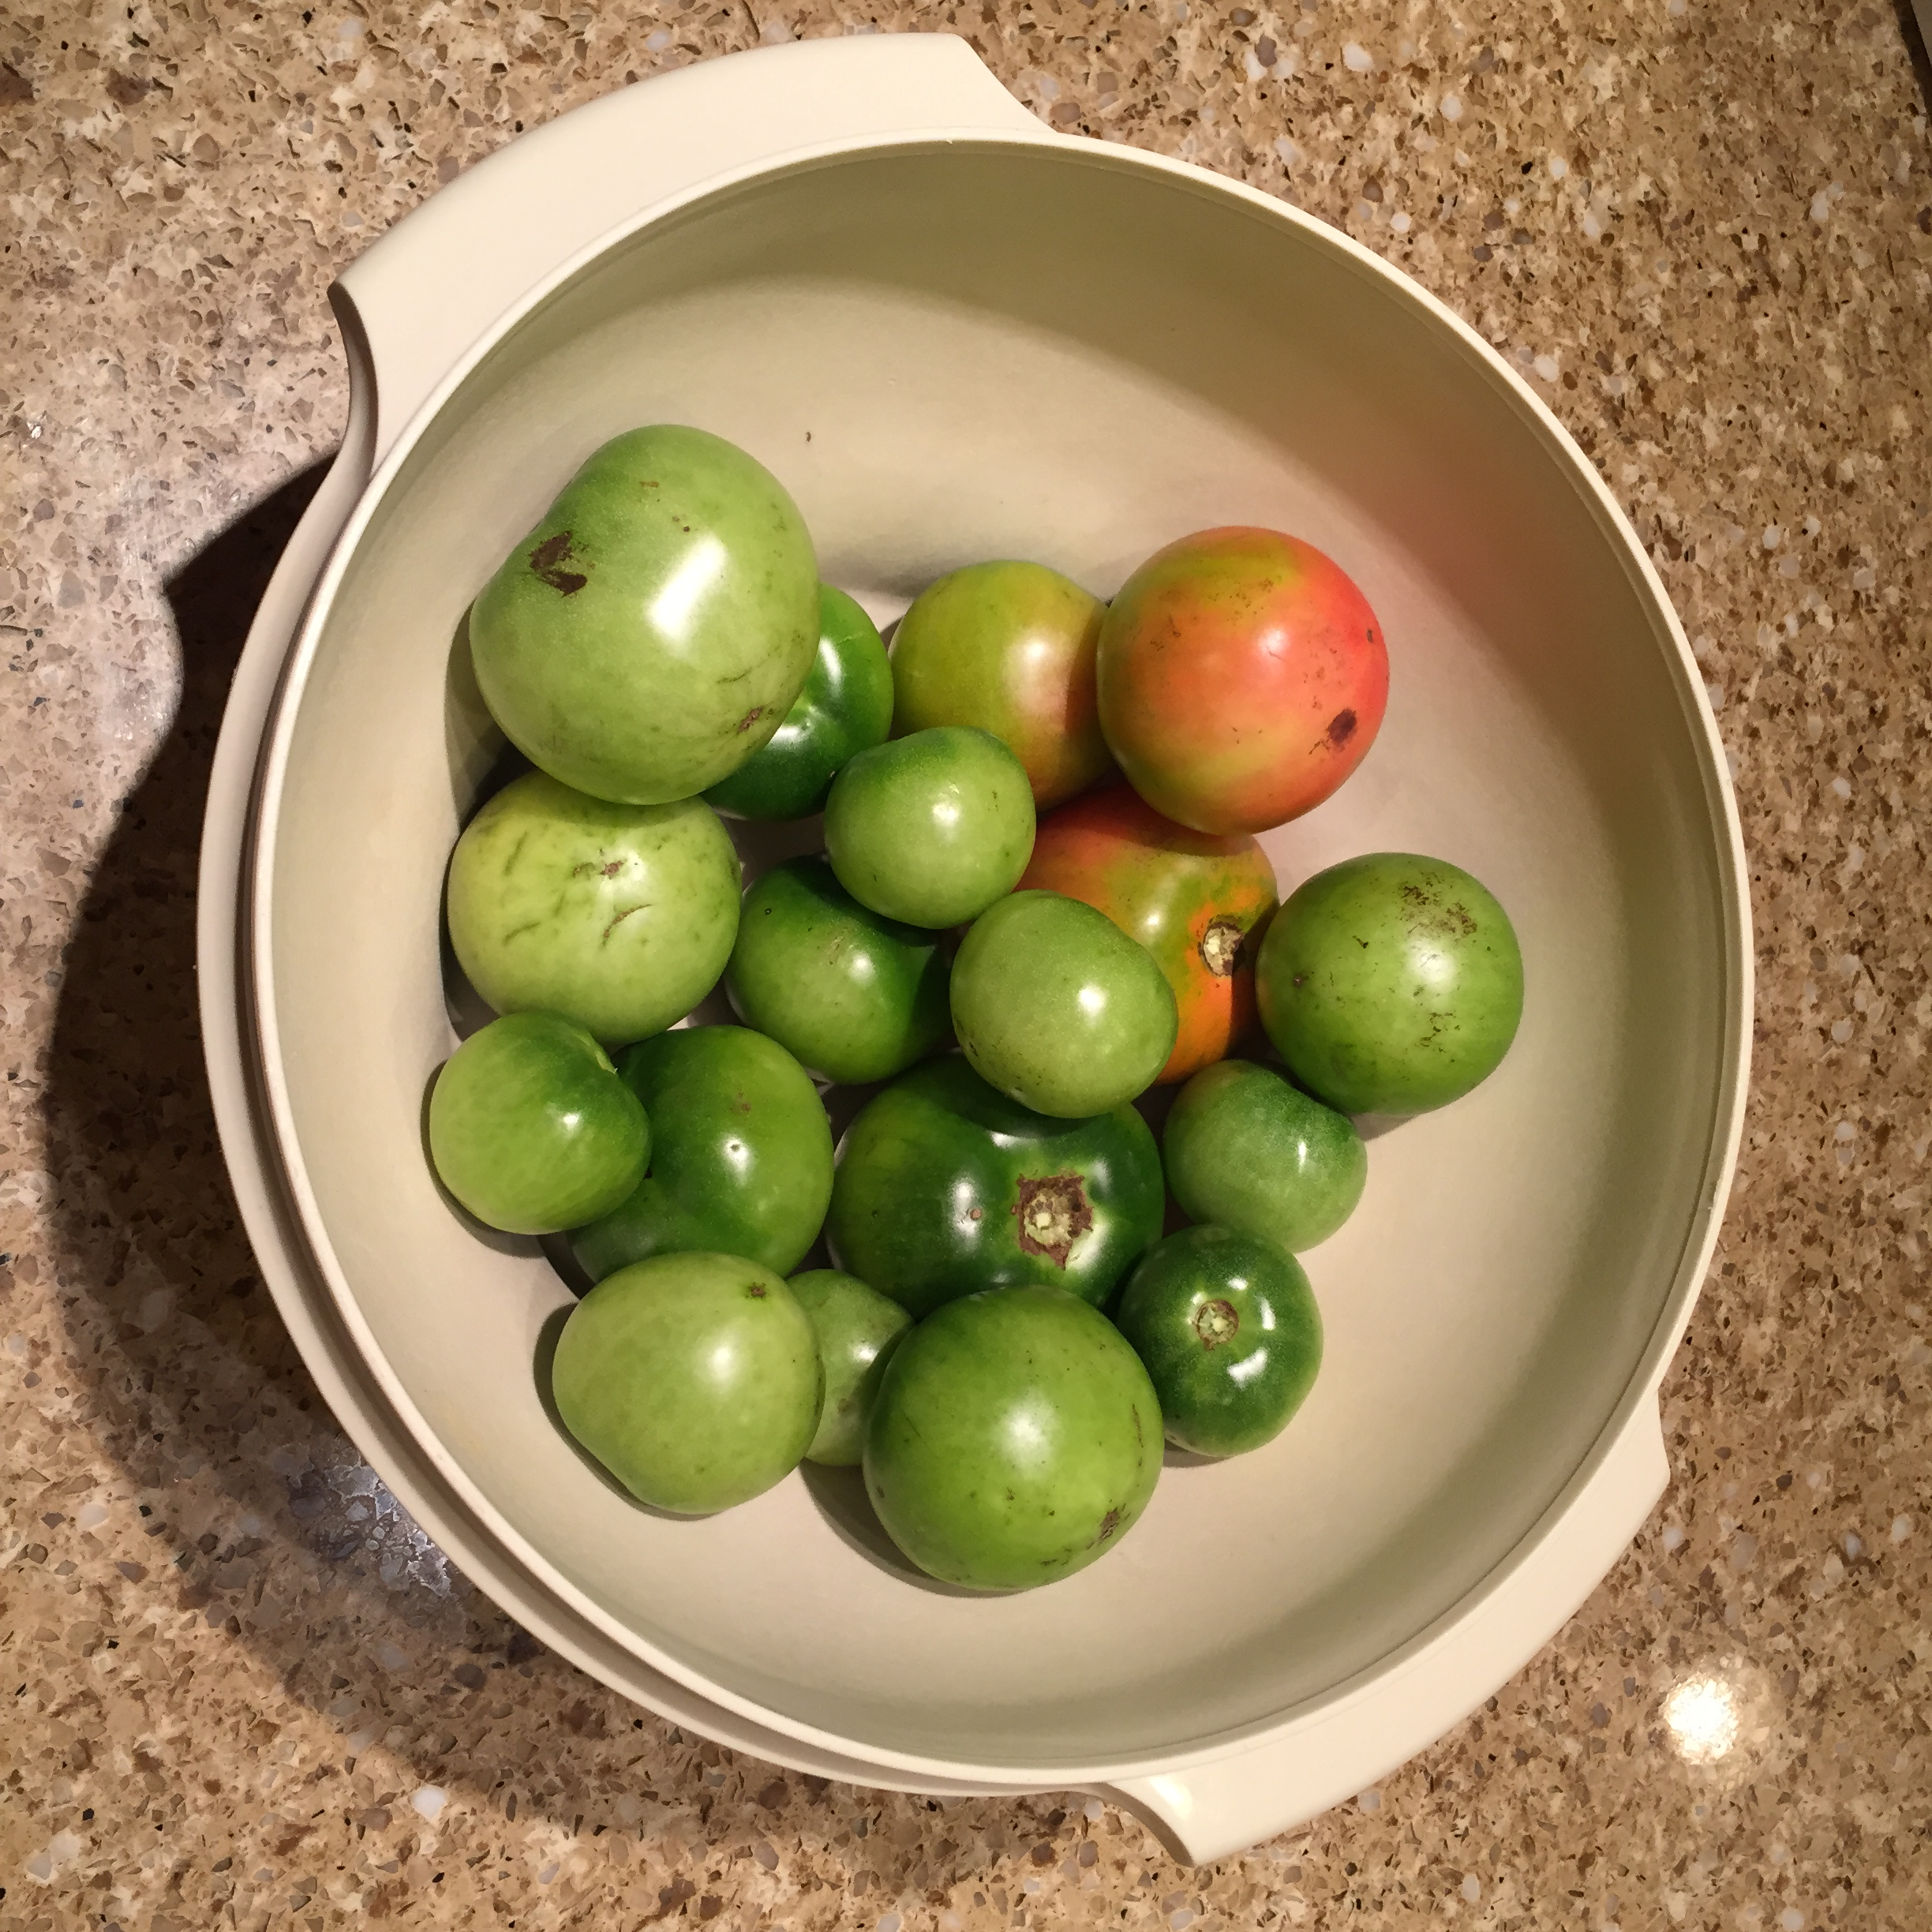 There were many green tomatoes left in the garden to find a good use for!